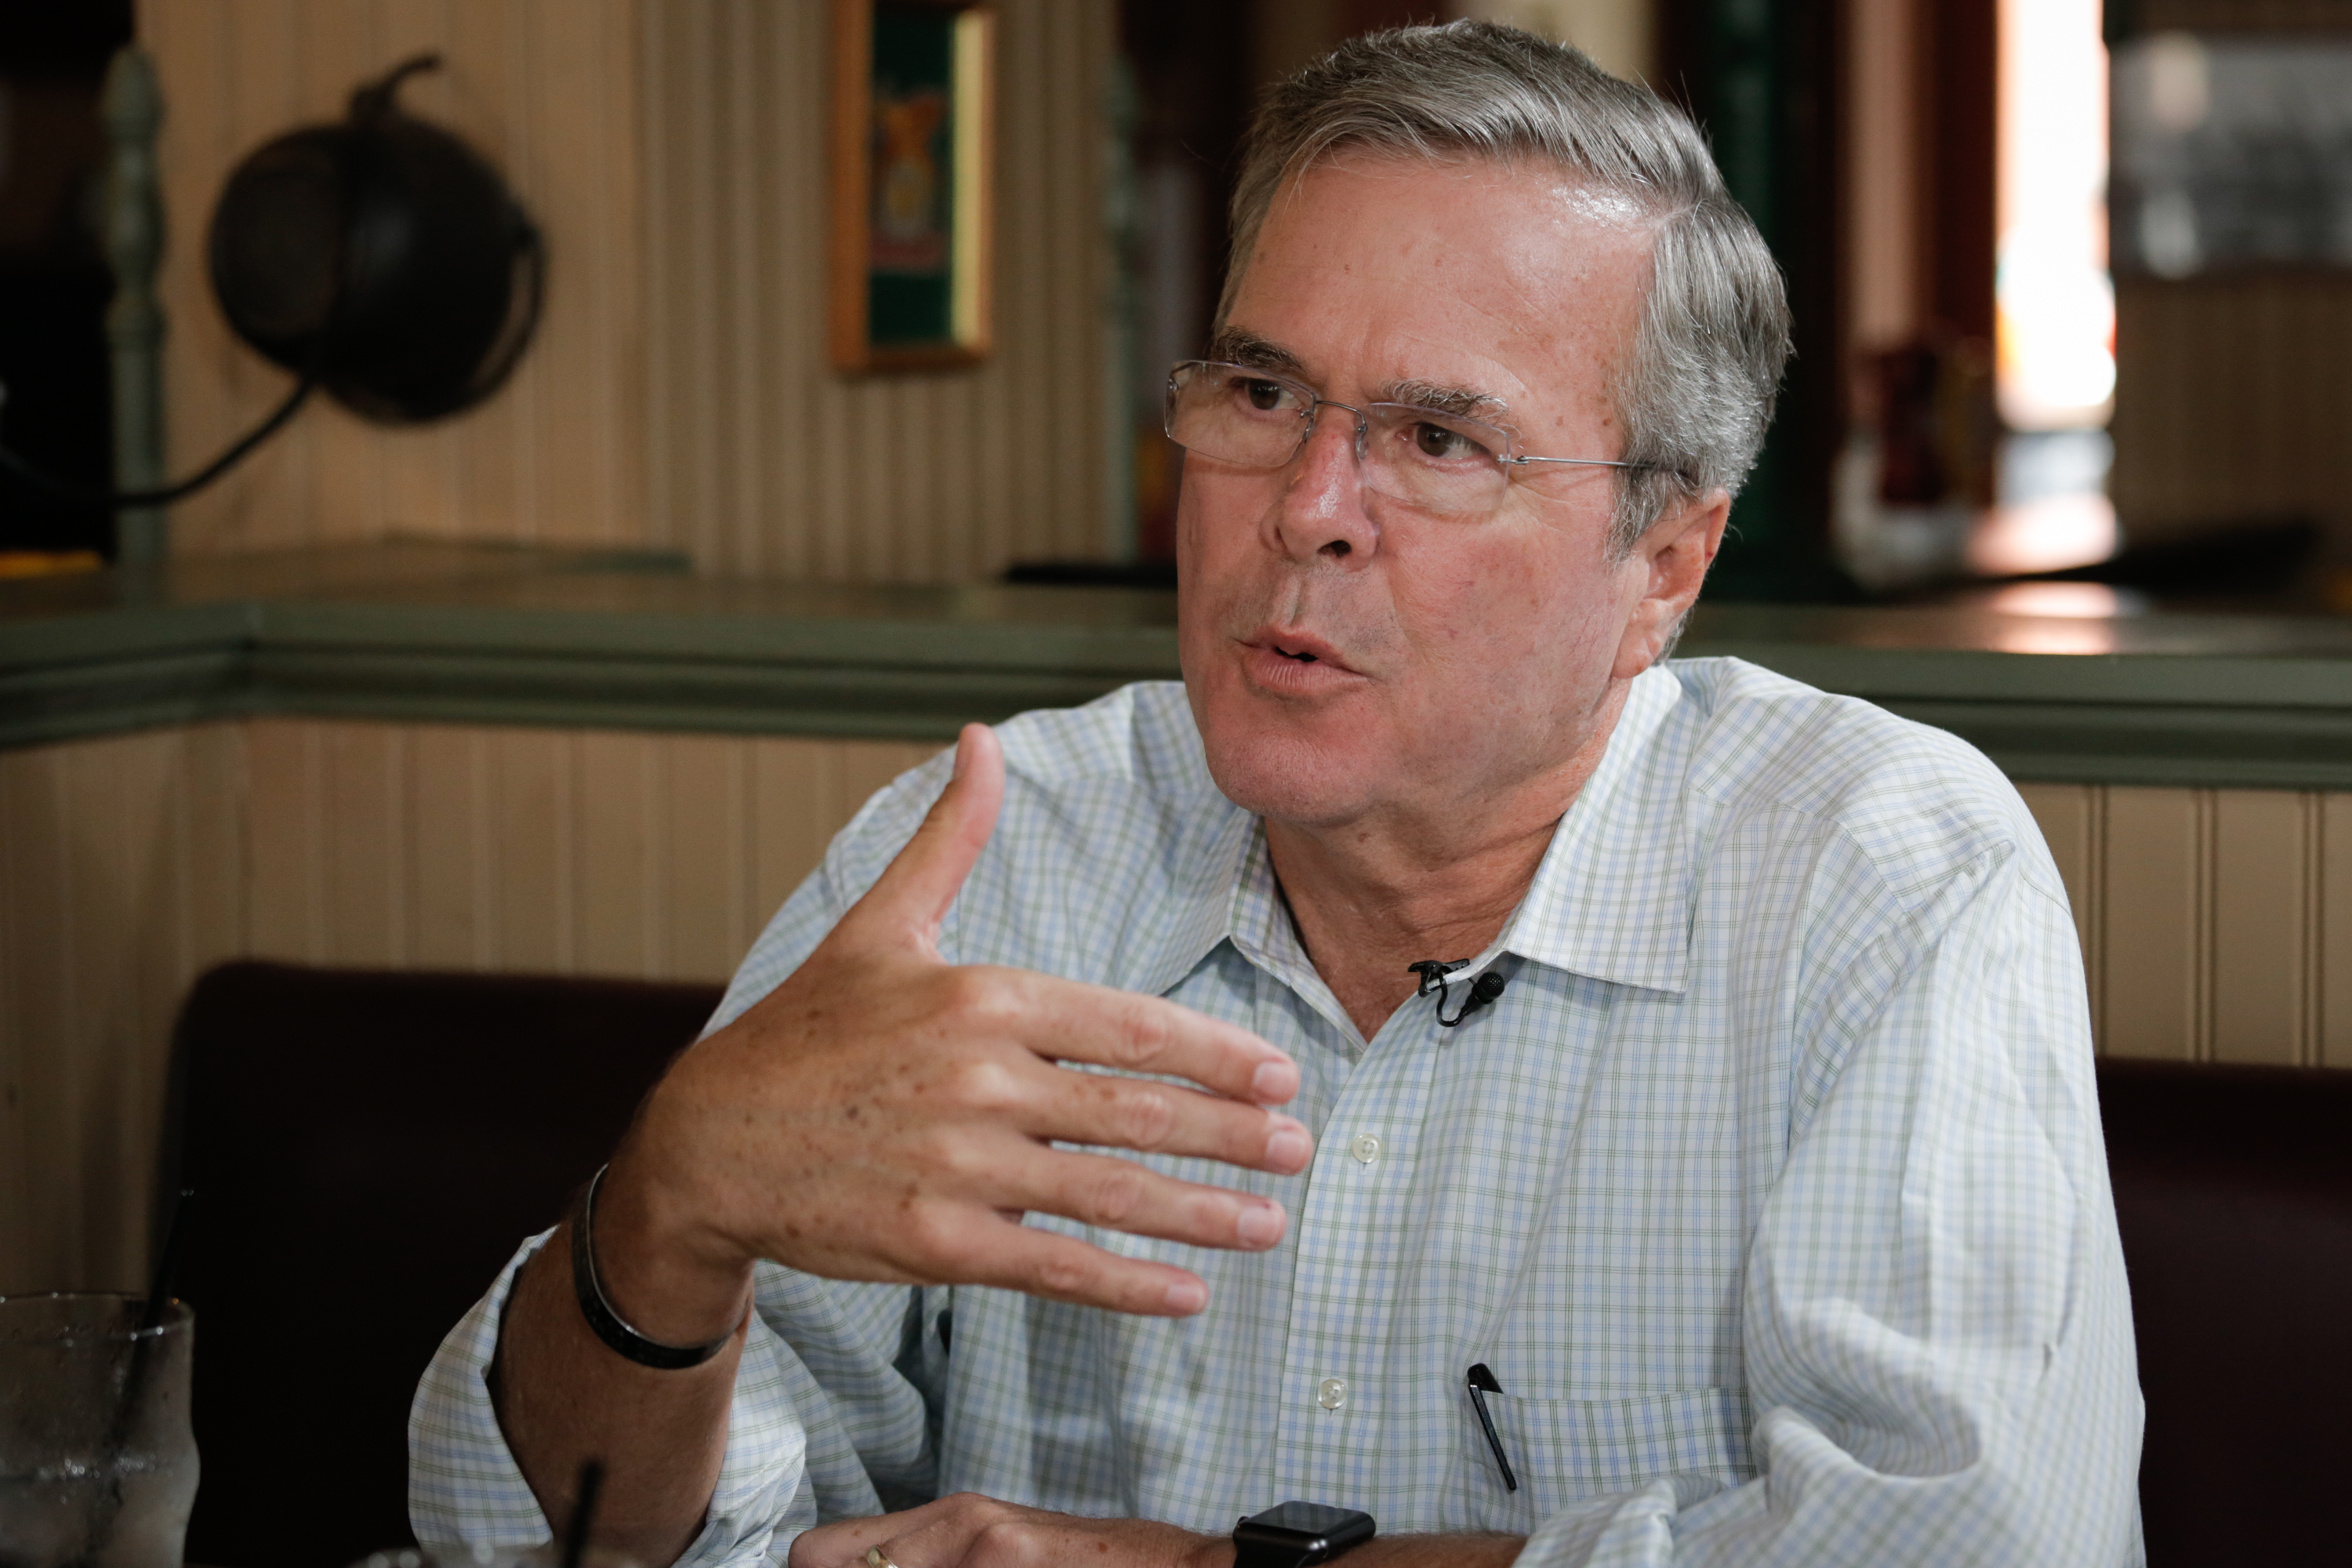 CNBC NEWS-- Pictured: Jeb Bush, former Governor of Florida and 2016 presidential election candidate, in an interview at the Parlor City Pub and Eatery in Cedar Rapids, Iowa on September 22, 2015 -- (Photo by: Mary Stevens/CNBC/NBCU Photo Bank)